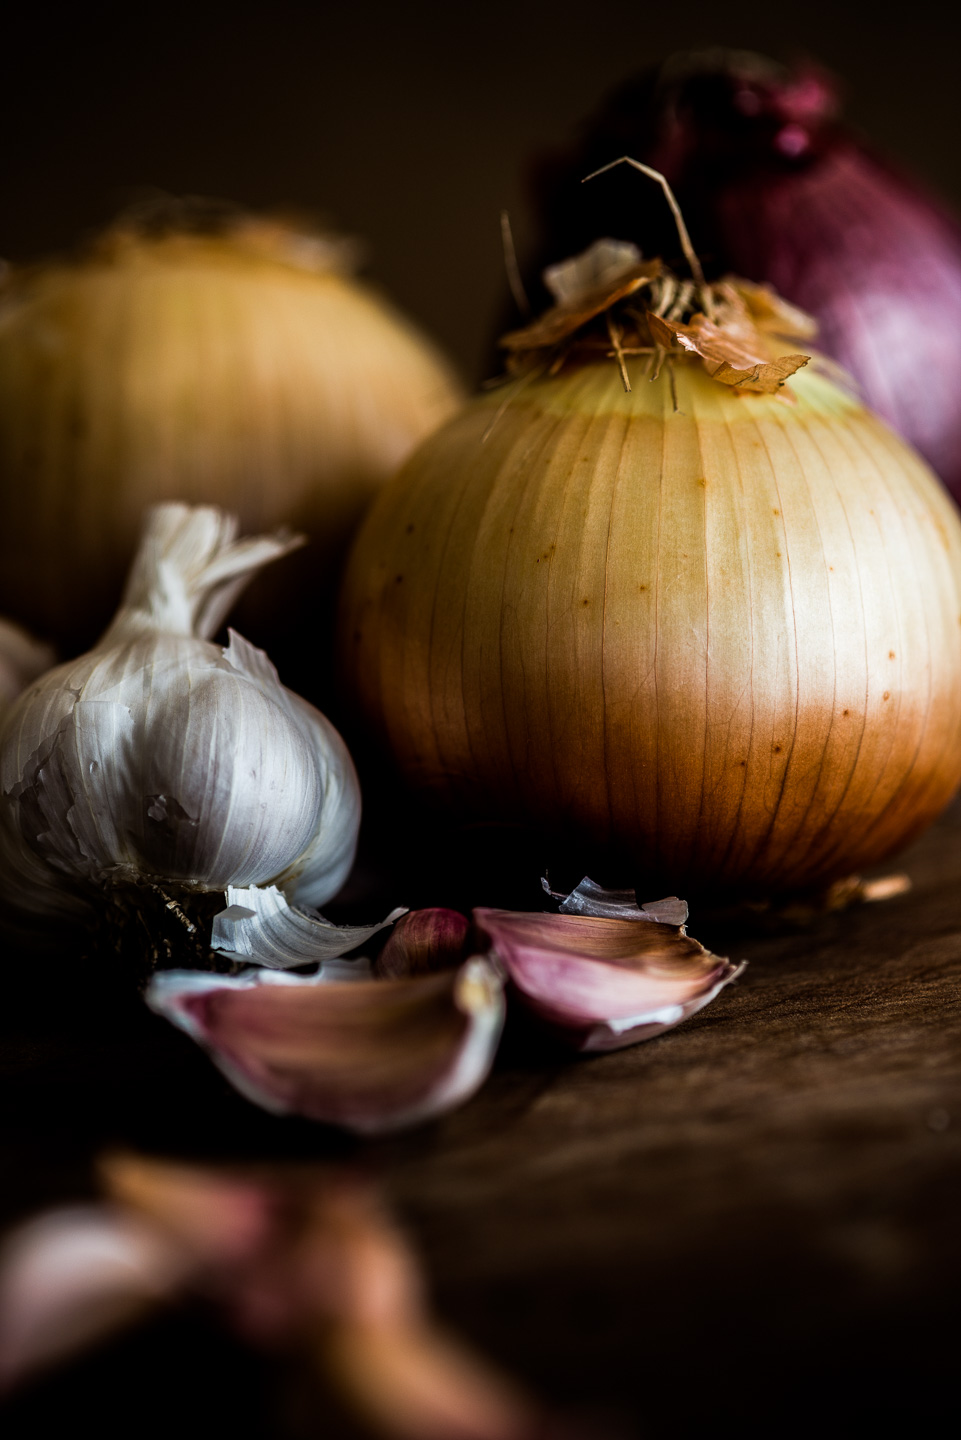 jeeheon-commercial-food-onions-002.jpg